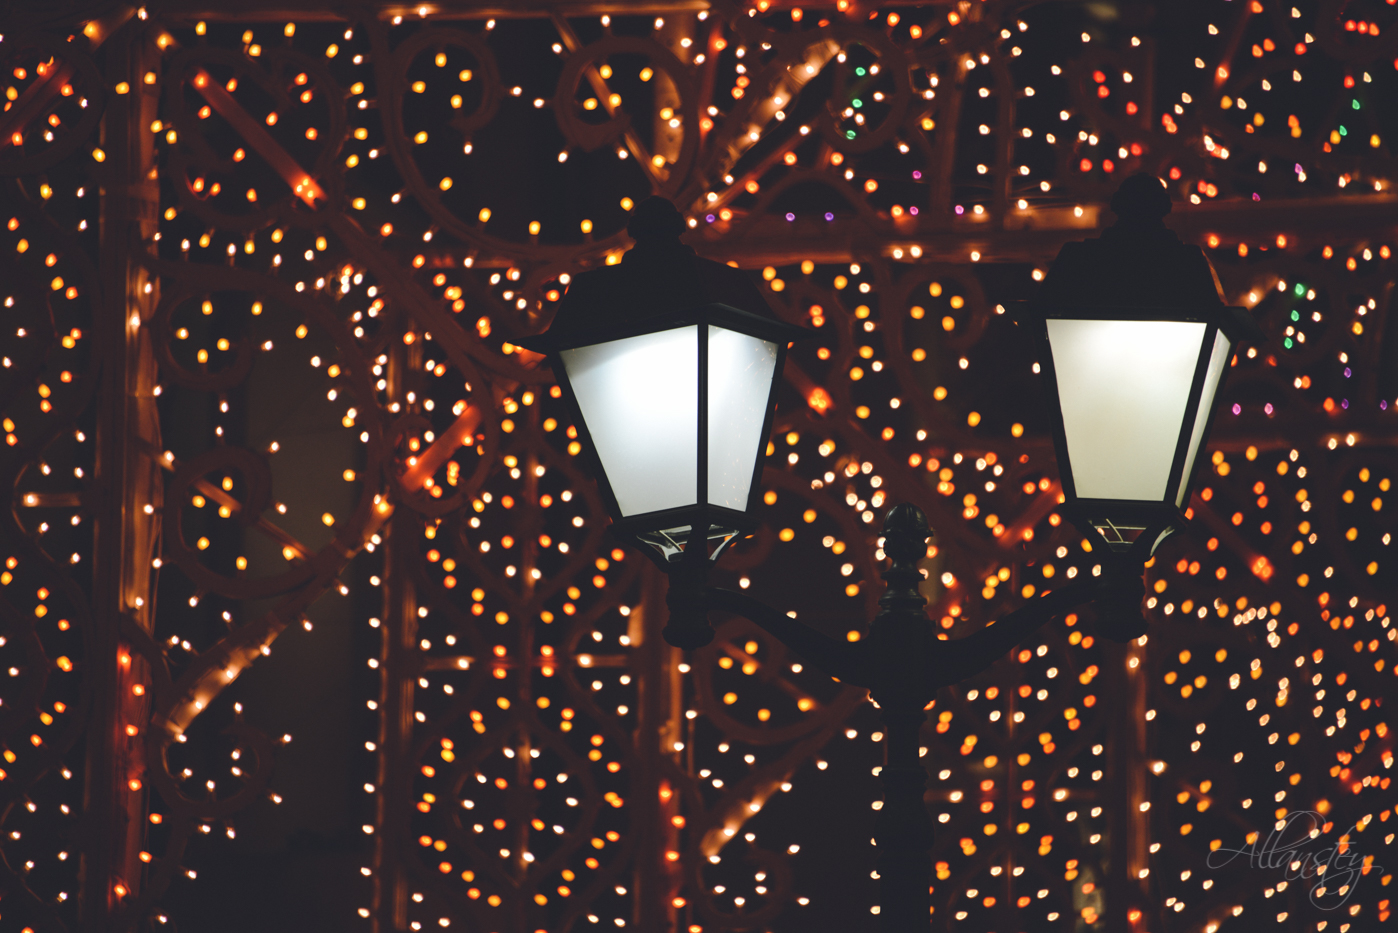 Lantern and Christmas lights on Nikolskaya Street in Moscow, Russia.